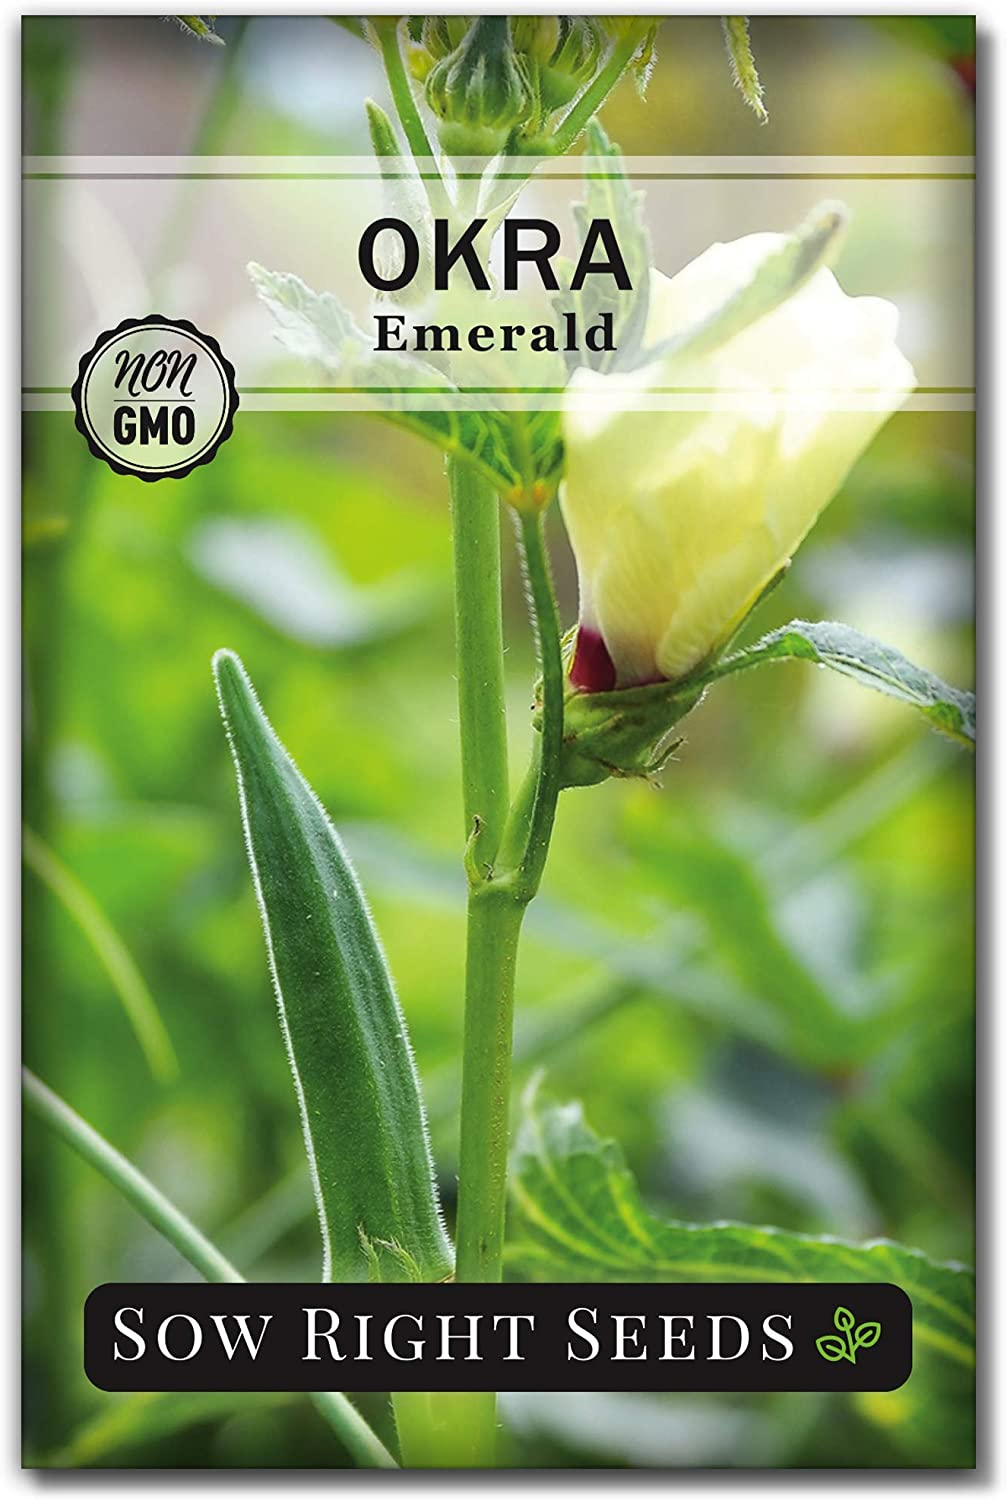 Sow Right Seeds - Emerald Okra Seed for Planting - Non-GMO Heirloom Packet with Instructions to Plant a Home Vegetable Garden - Great Gardening Gift (1)